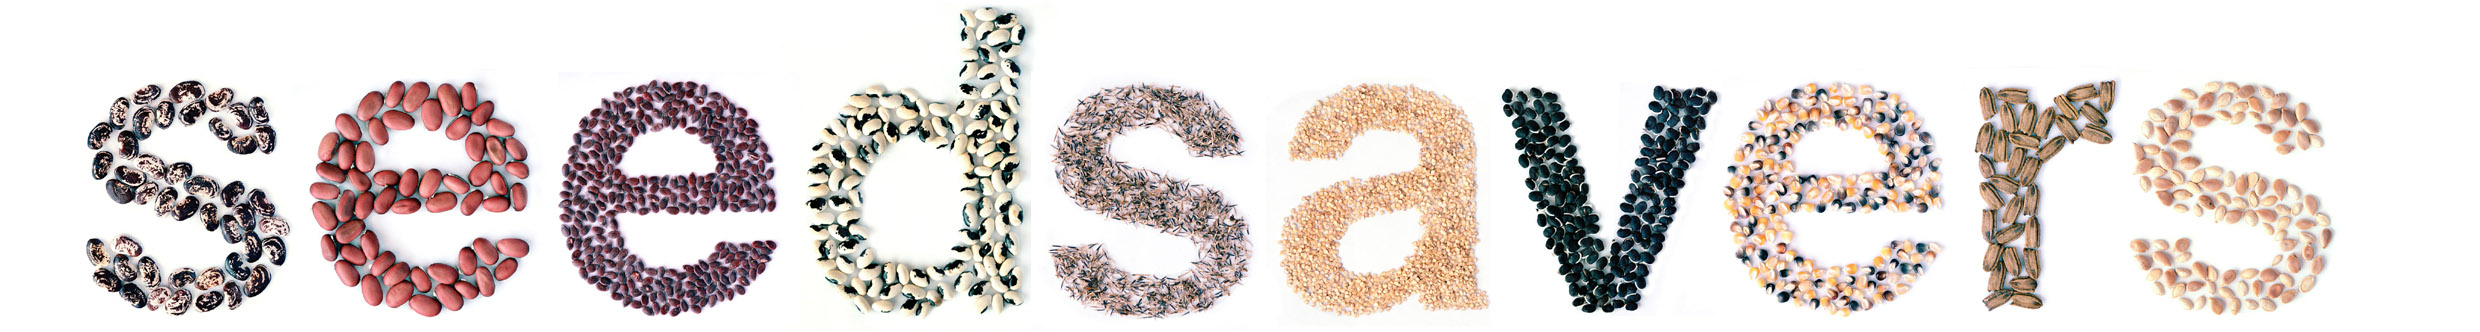 logo for Seed Savers Network